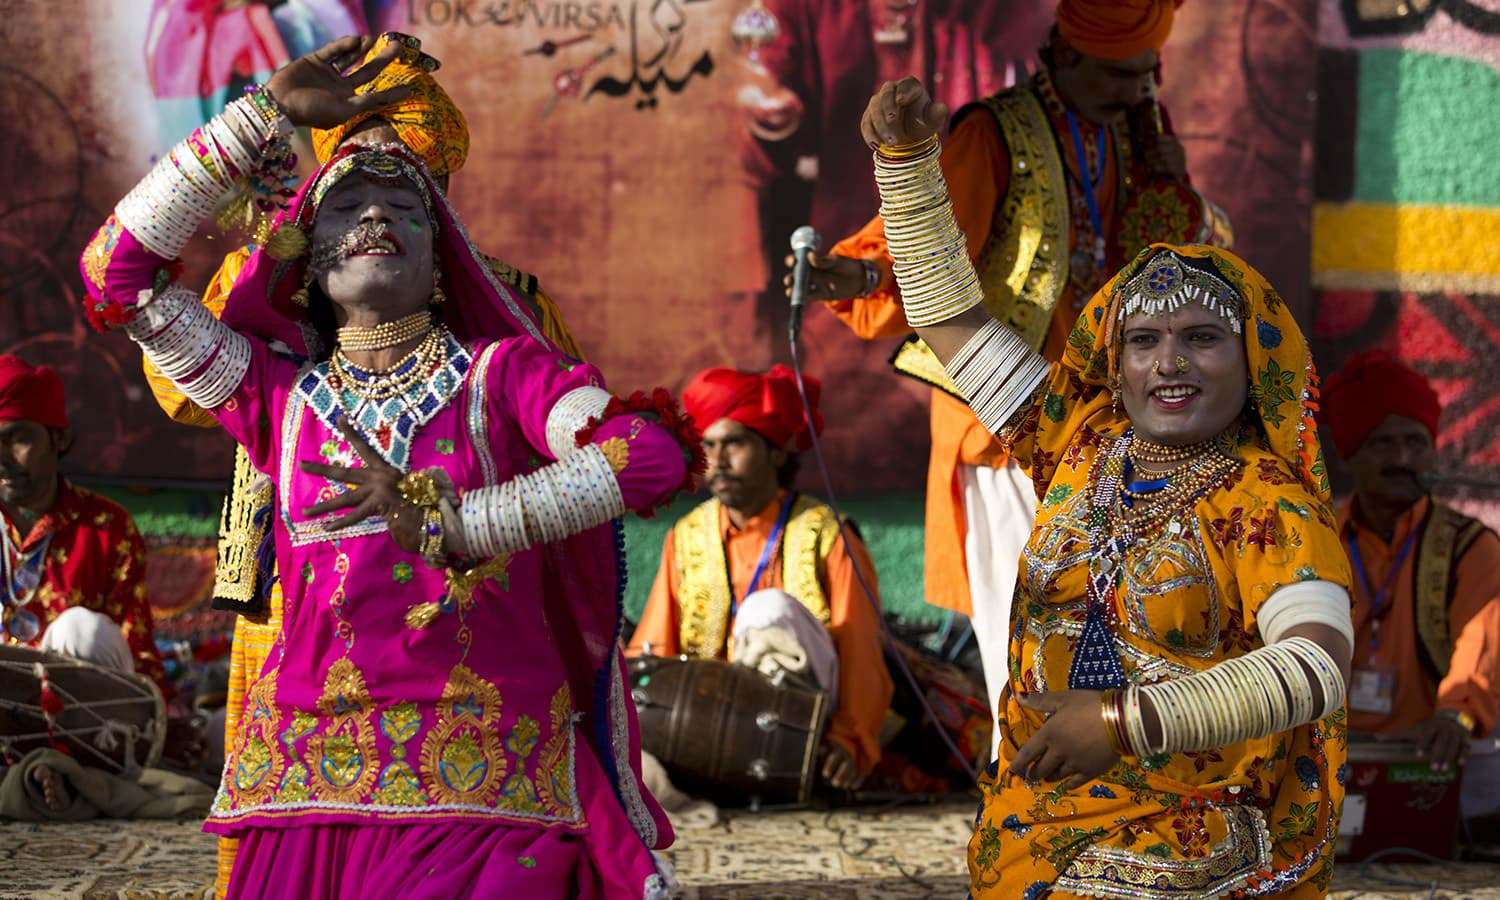 Folk artists, who are eunuchs and street performers belonging to the minority Hindu Bheel community, perform at the festival. ─ AP